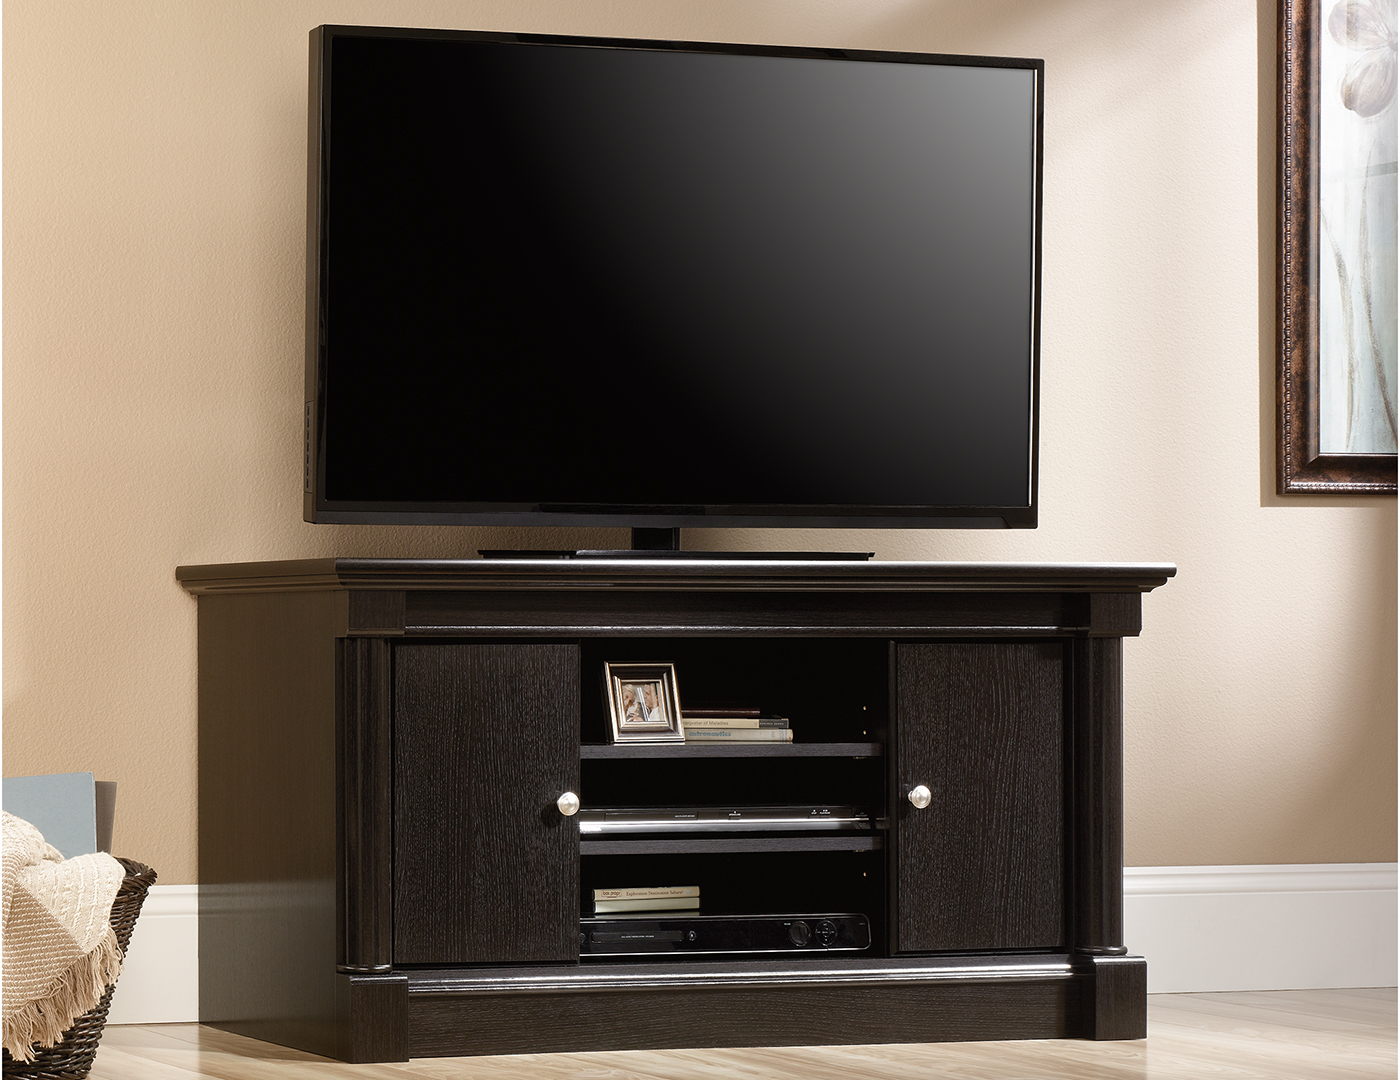 Avenue 8 TV Stand